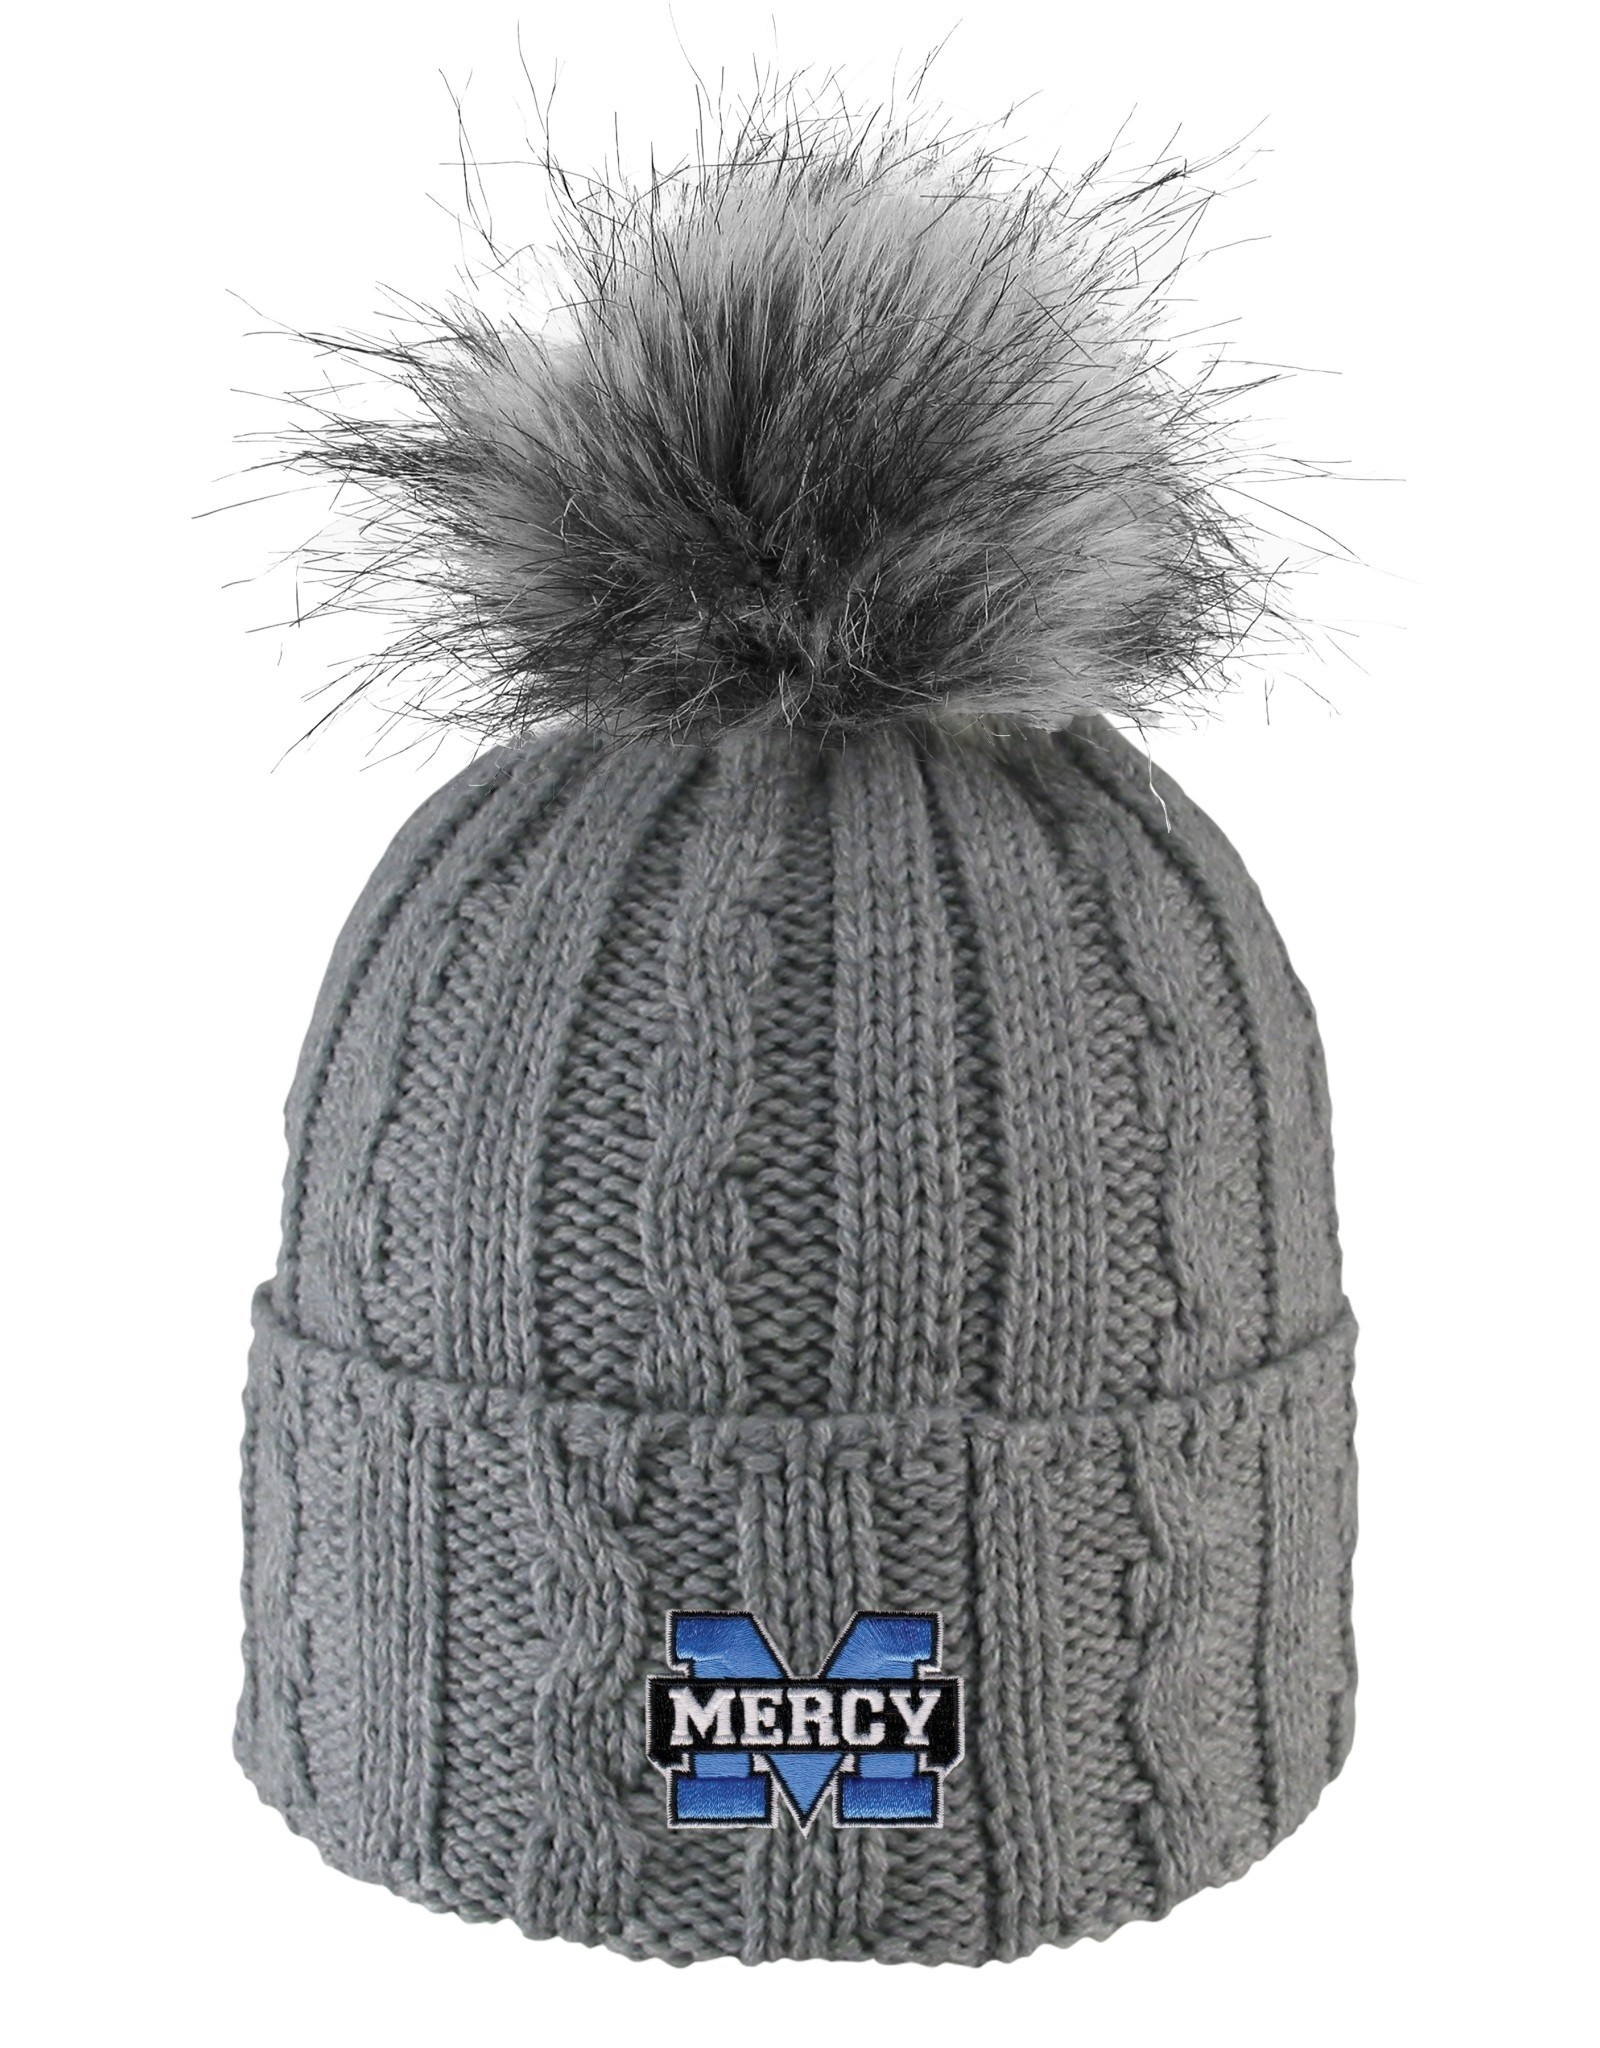 LOGOFIT Mercy Knit Beanie Hat with Faux Fur Pom